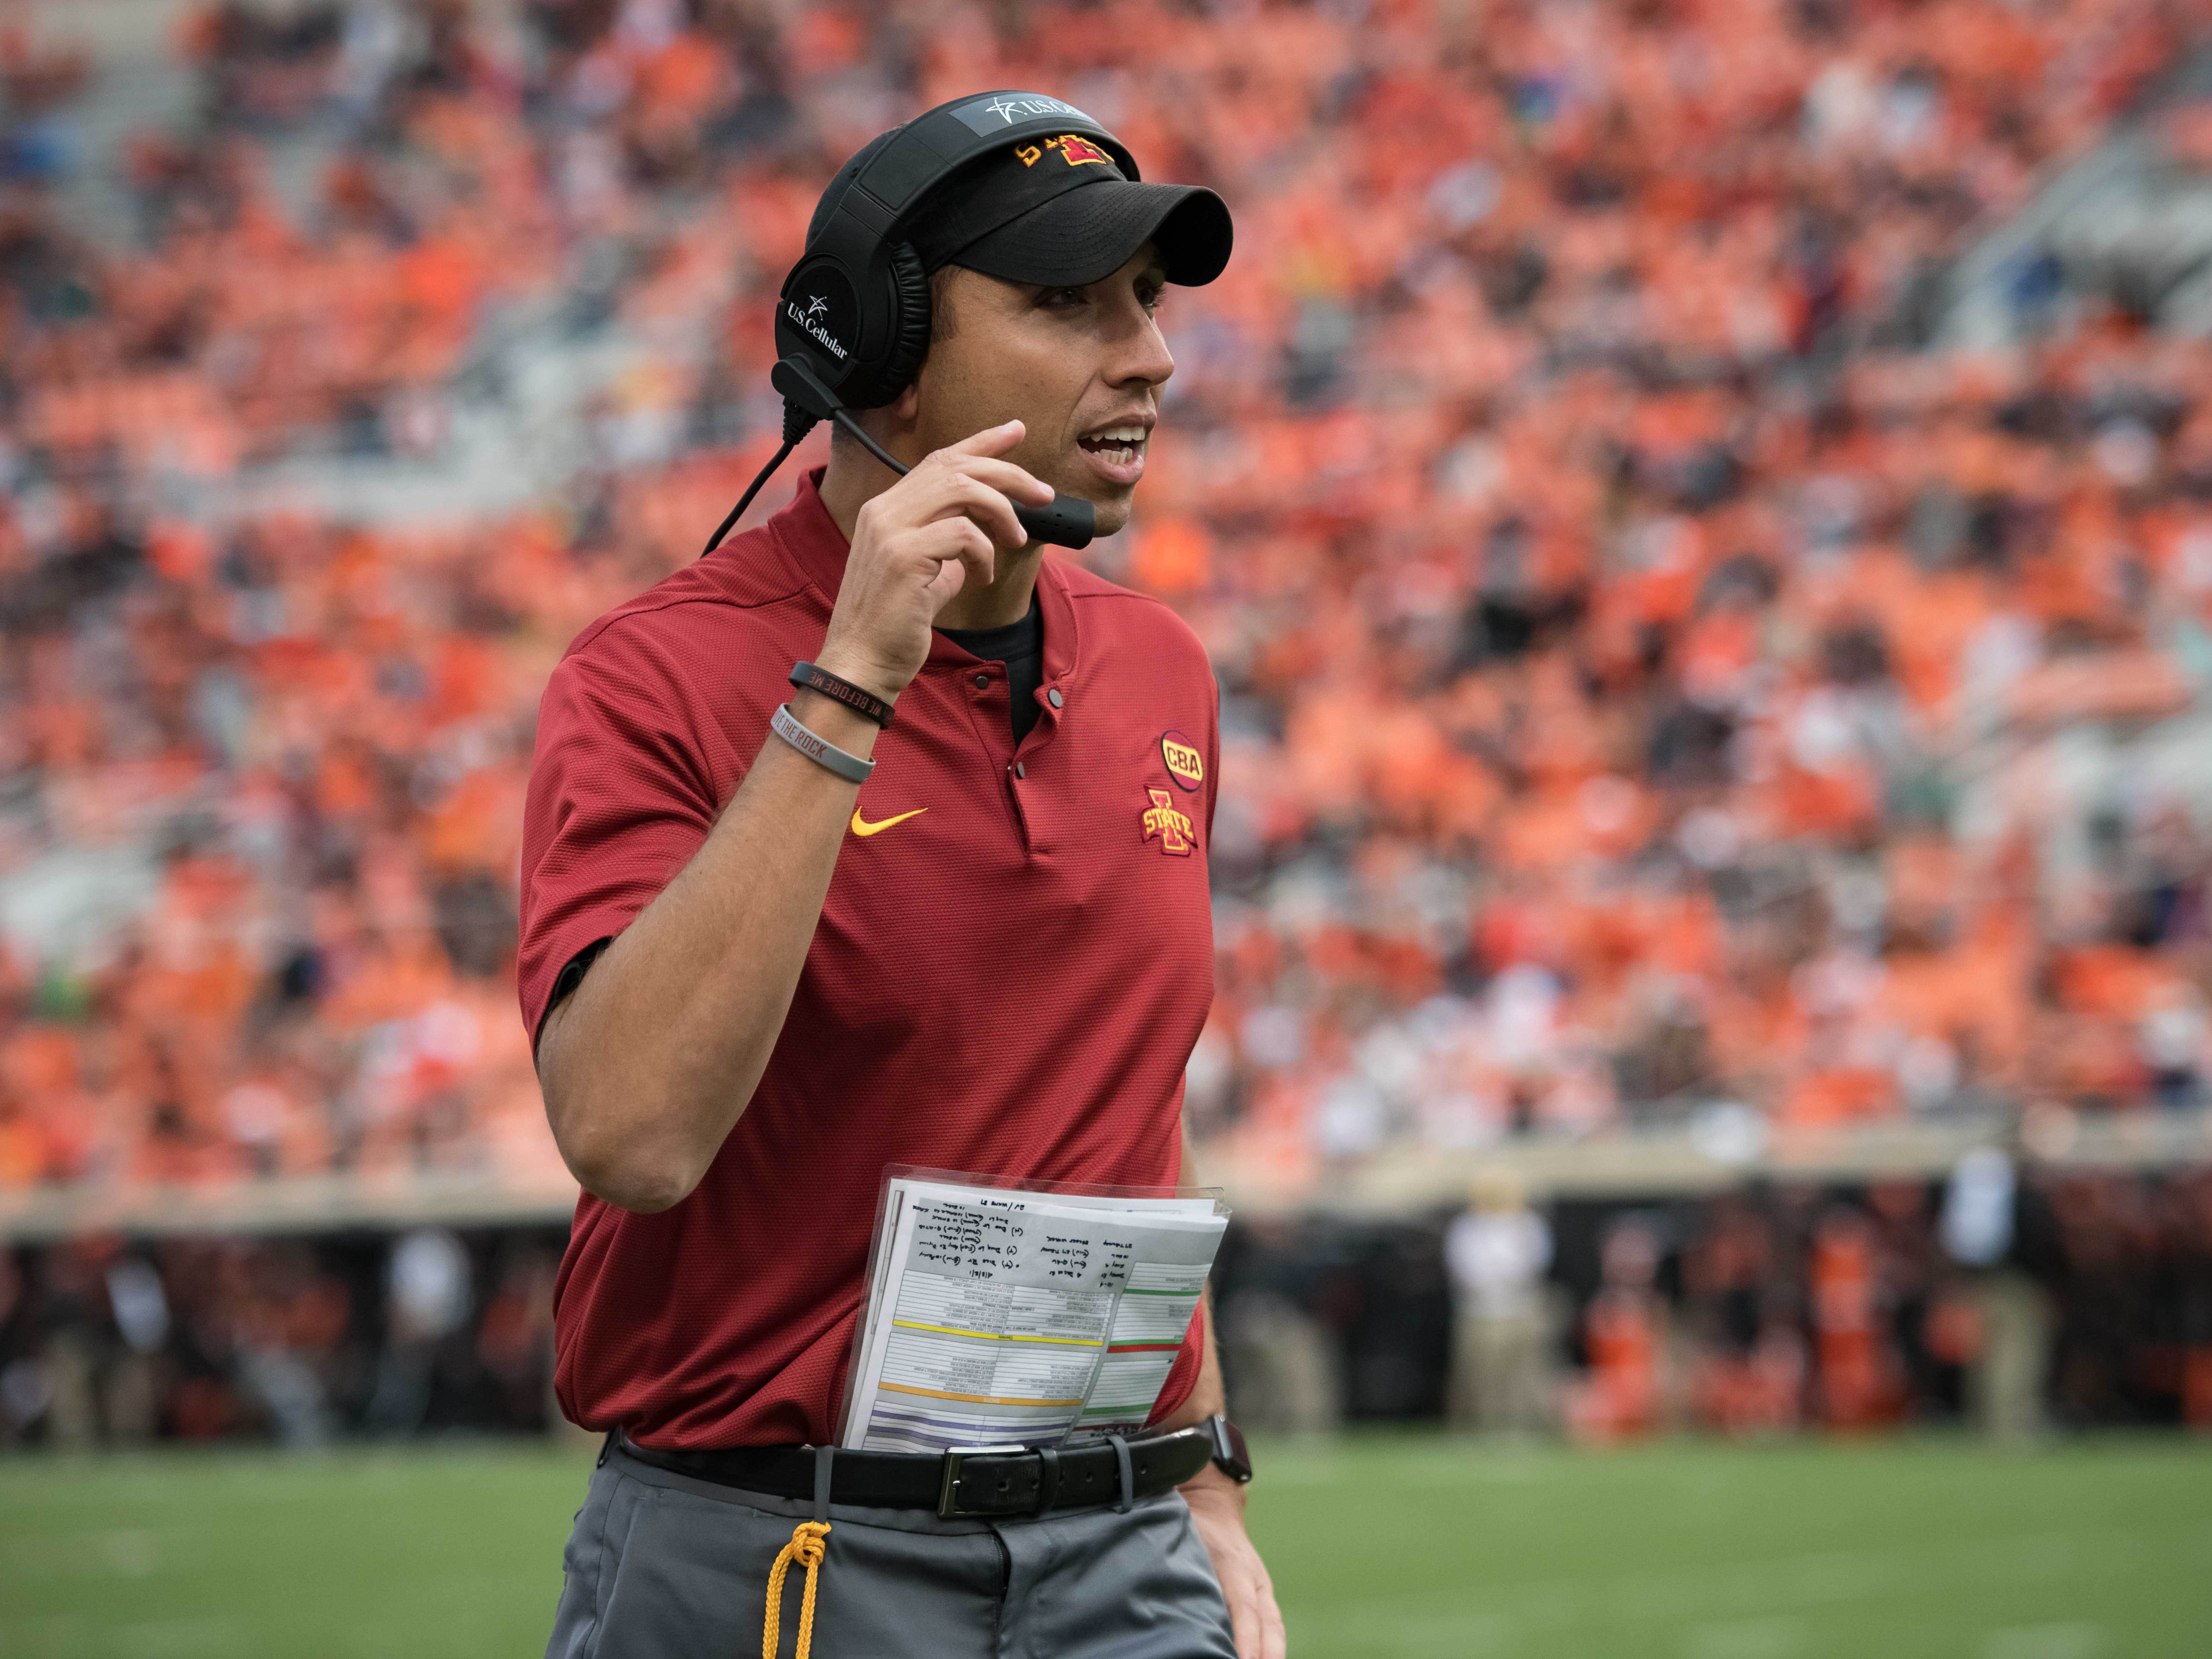 Oct 6, 2018; Stillwater, OK, USA; Iowa State Cyclones head coach Matt Campbell reacts during the second half in the game against the Oklahoma State Cowboys at Boone Pickens Stadium.